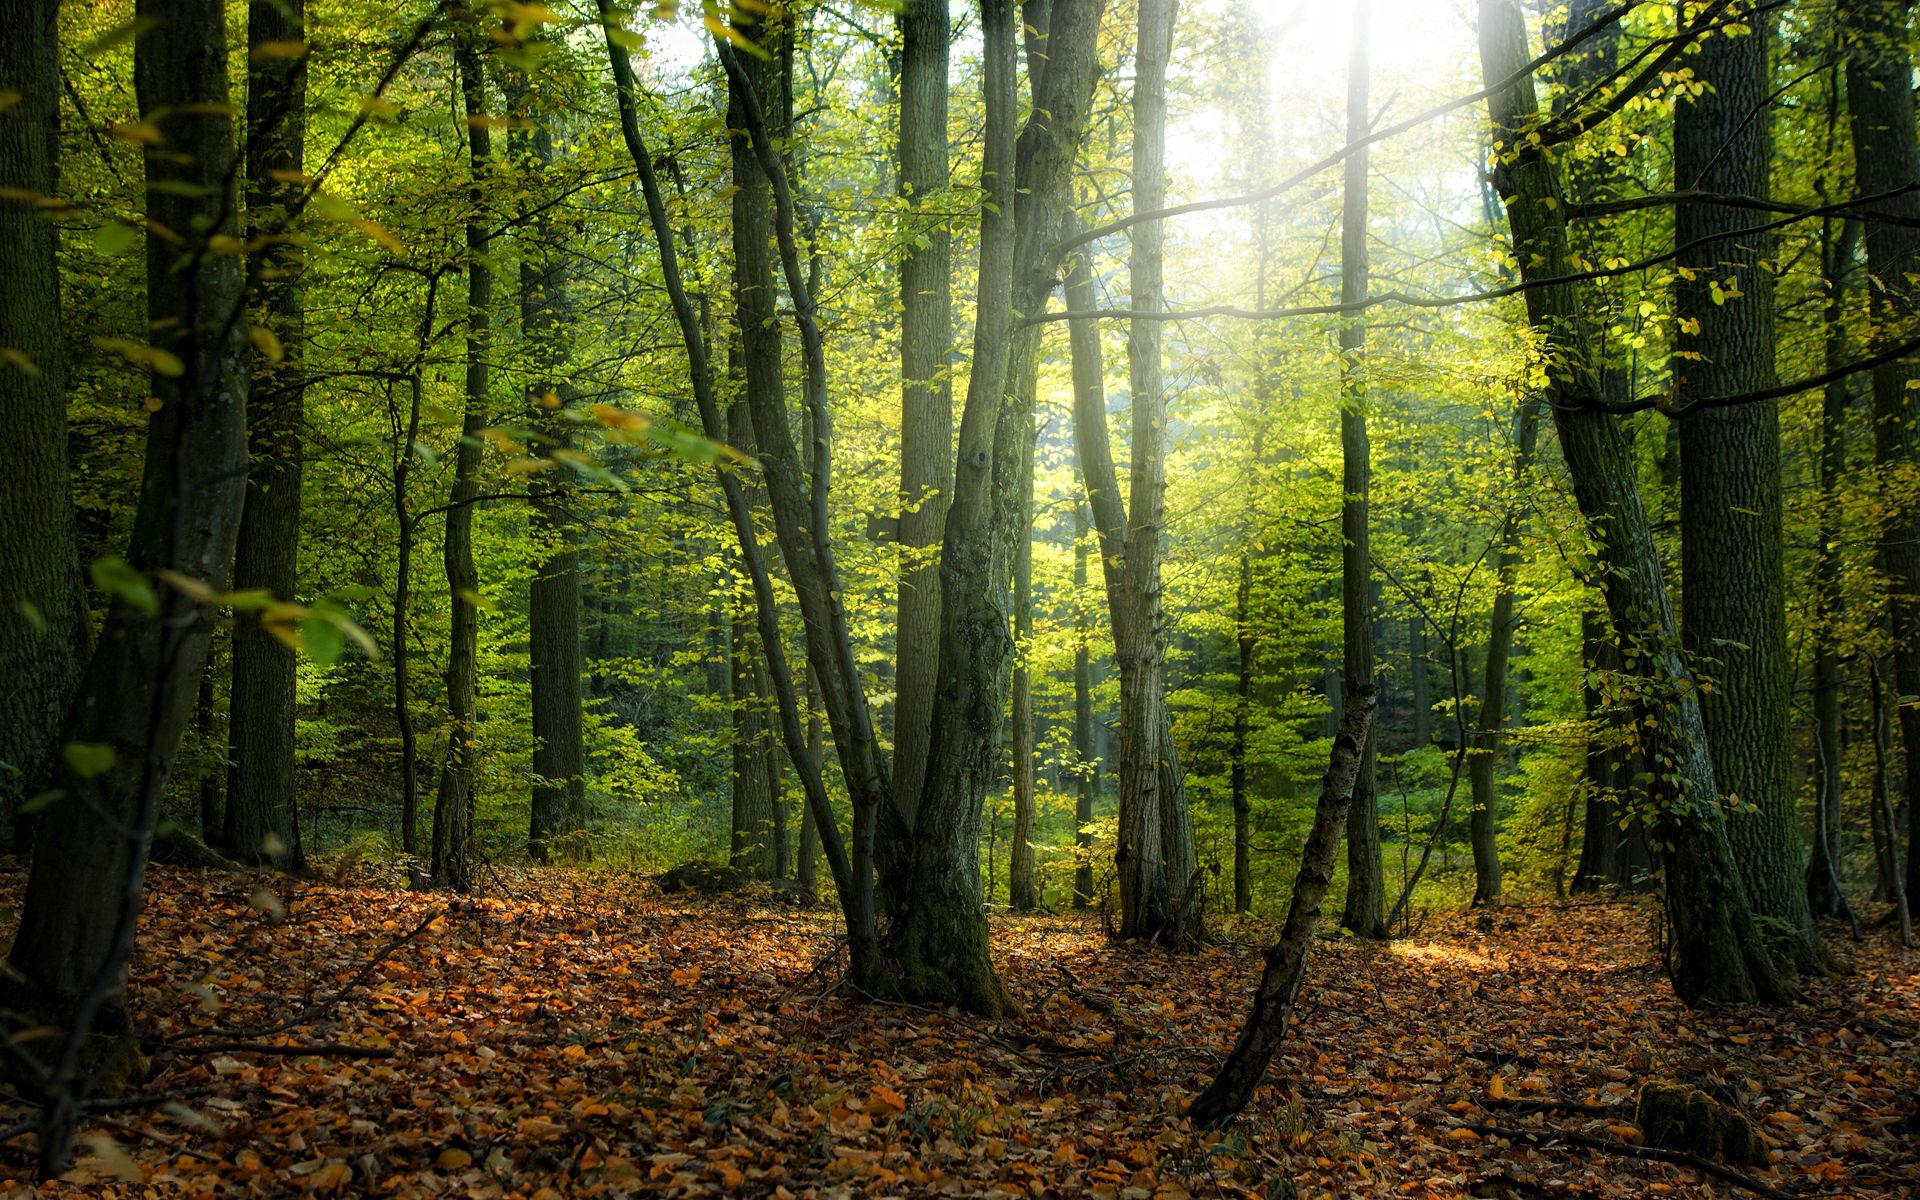 153078 download wallpaper Forest, Nature, Trees, Autumn screensavers and pictures for free